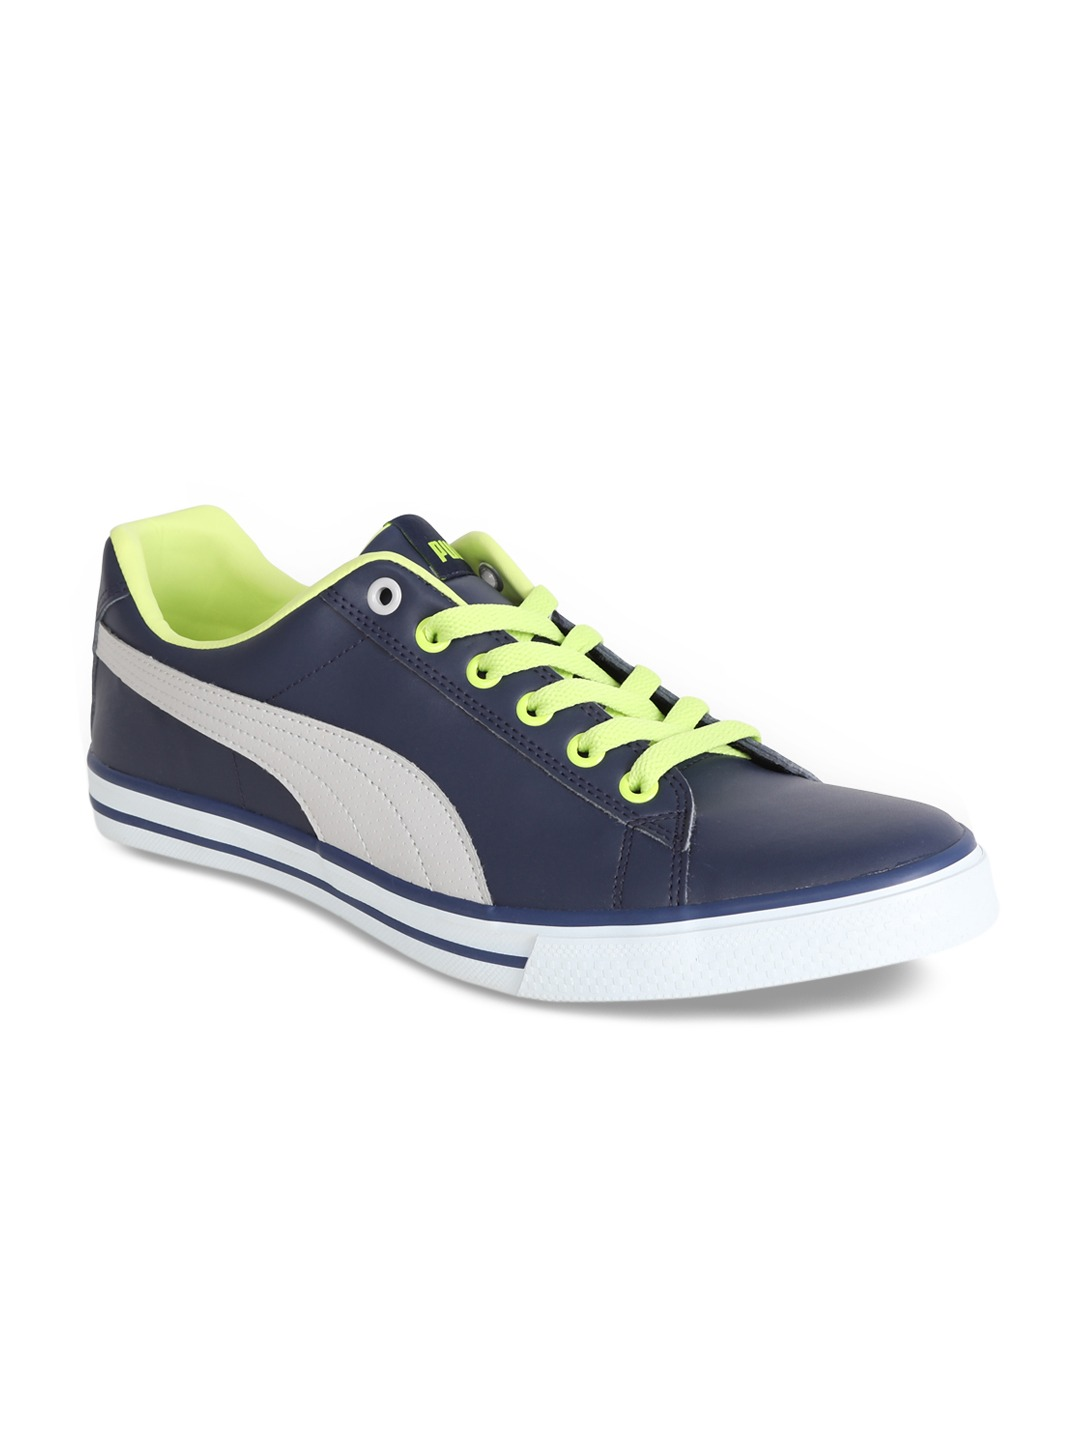 Navy Blue Colourblocked Sneakers